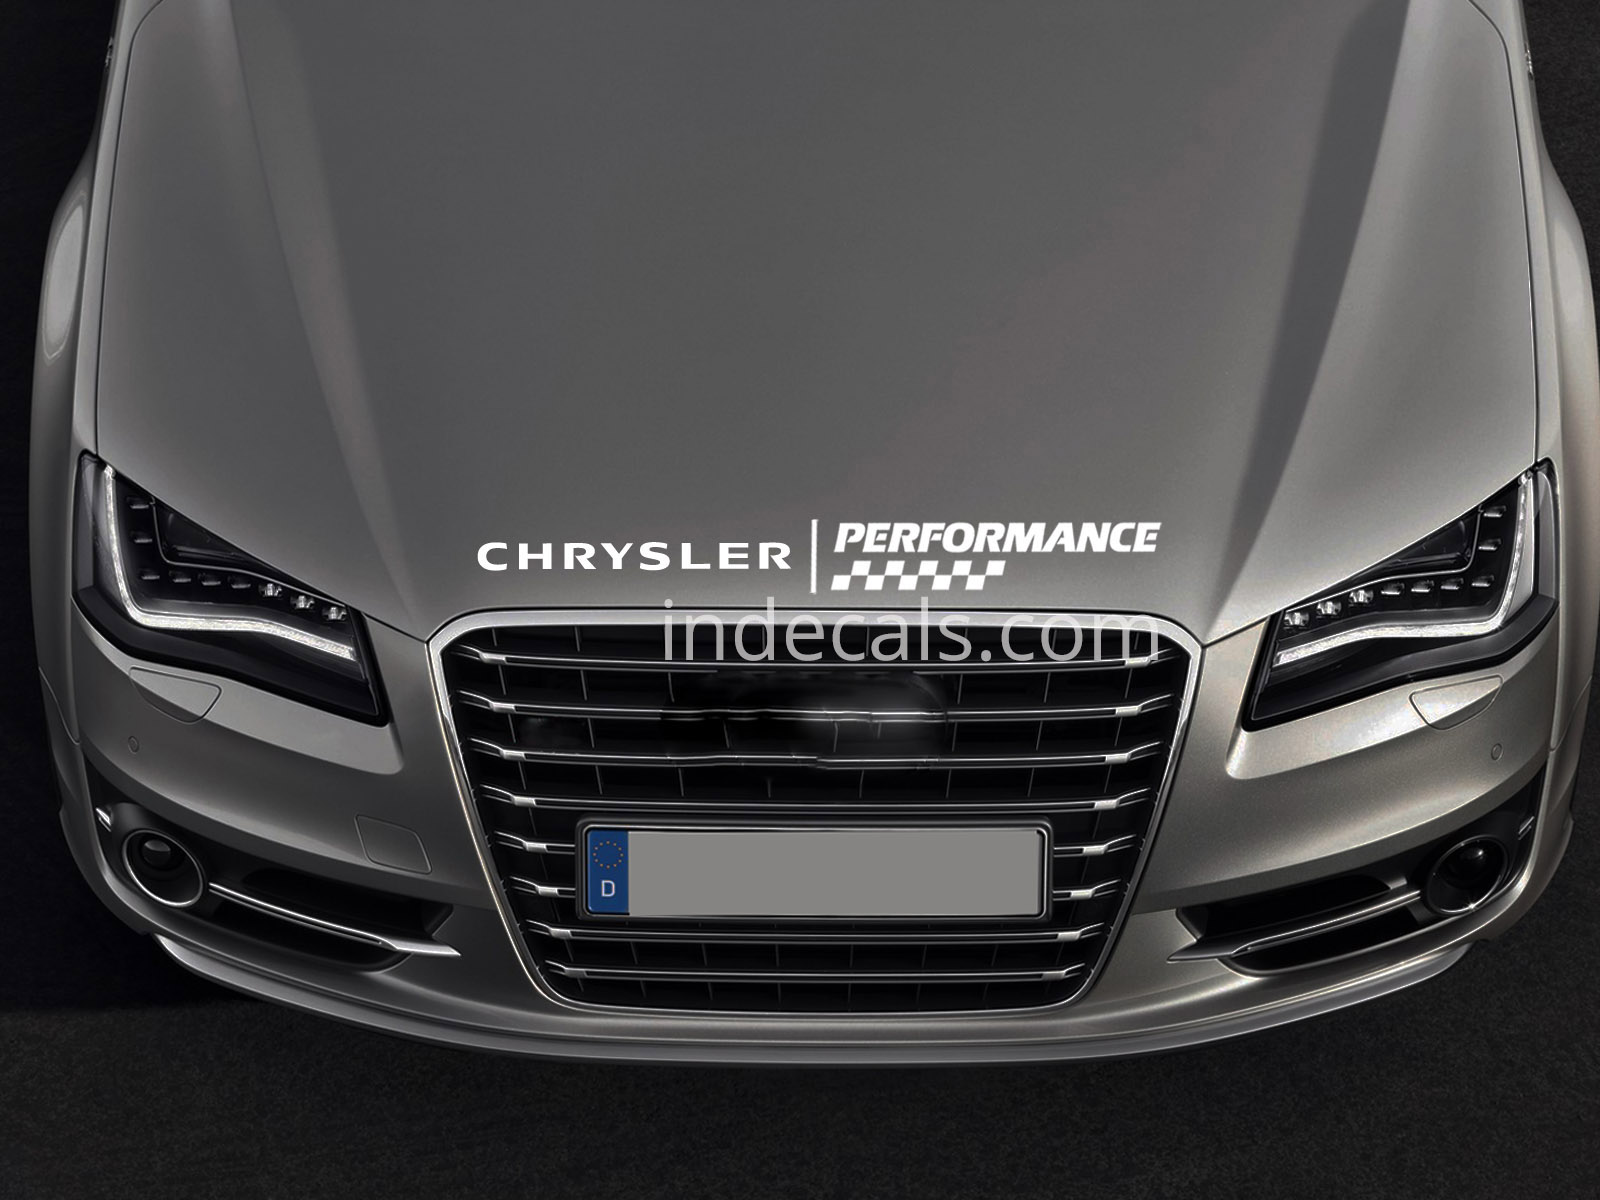 1 x Chrysler Peformance Sticker for Bonnet - White